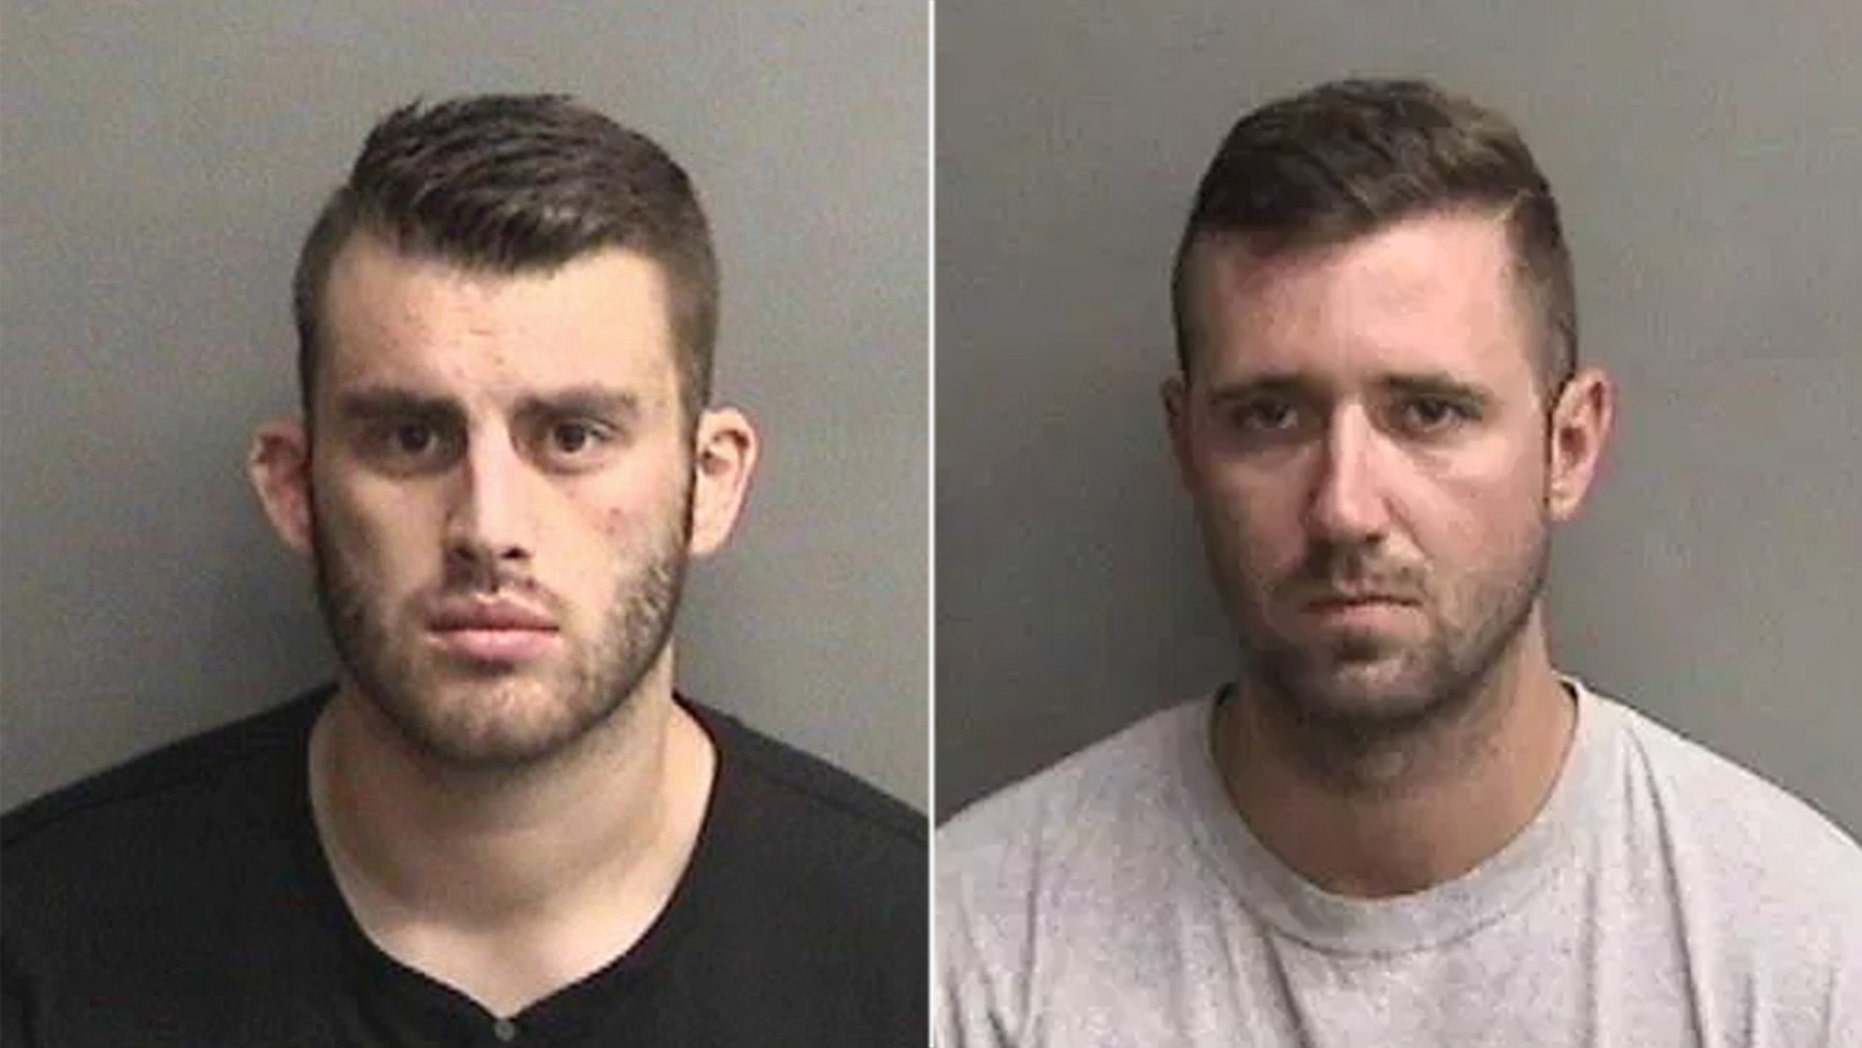 Erik McDermott and Justin Linn are accused of ordering inmates to fling feces and urine at each other.